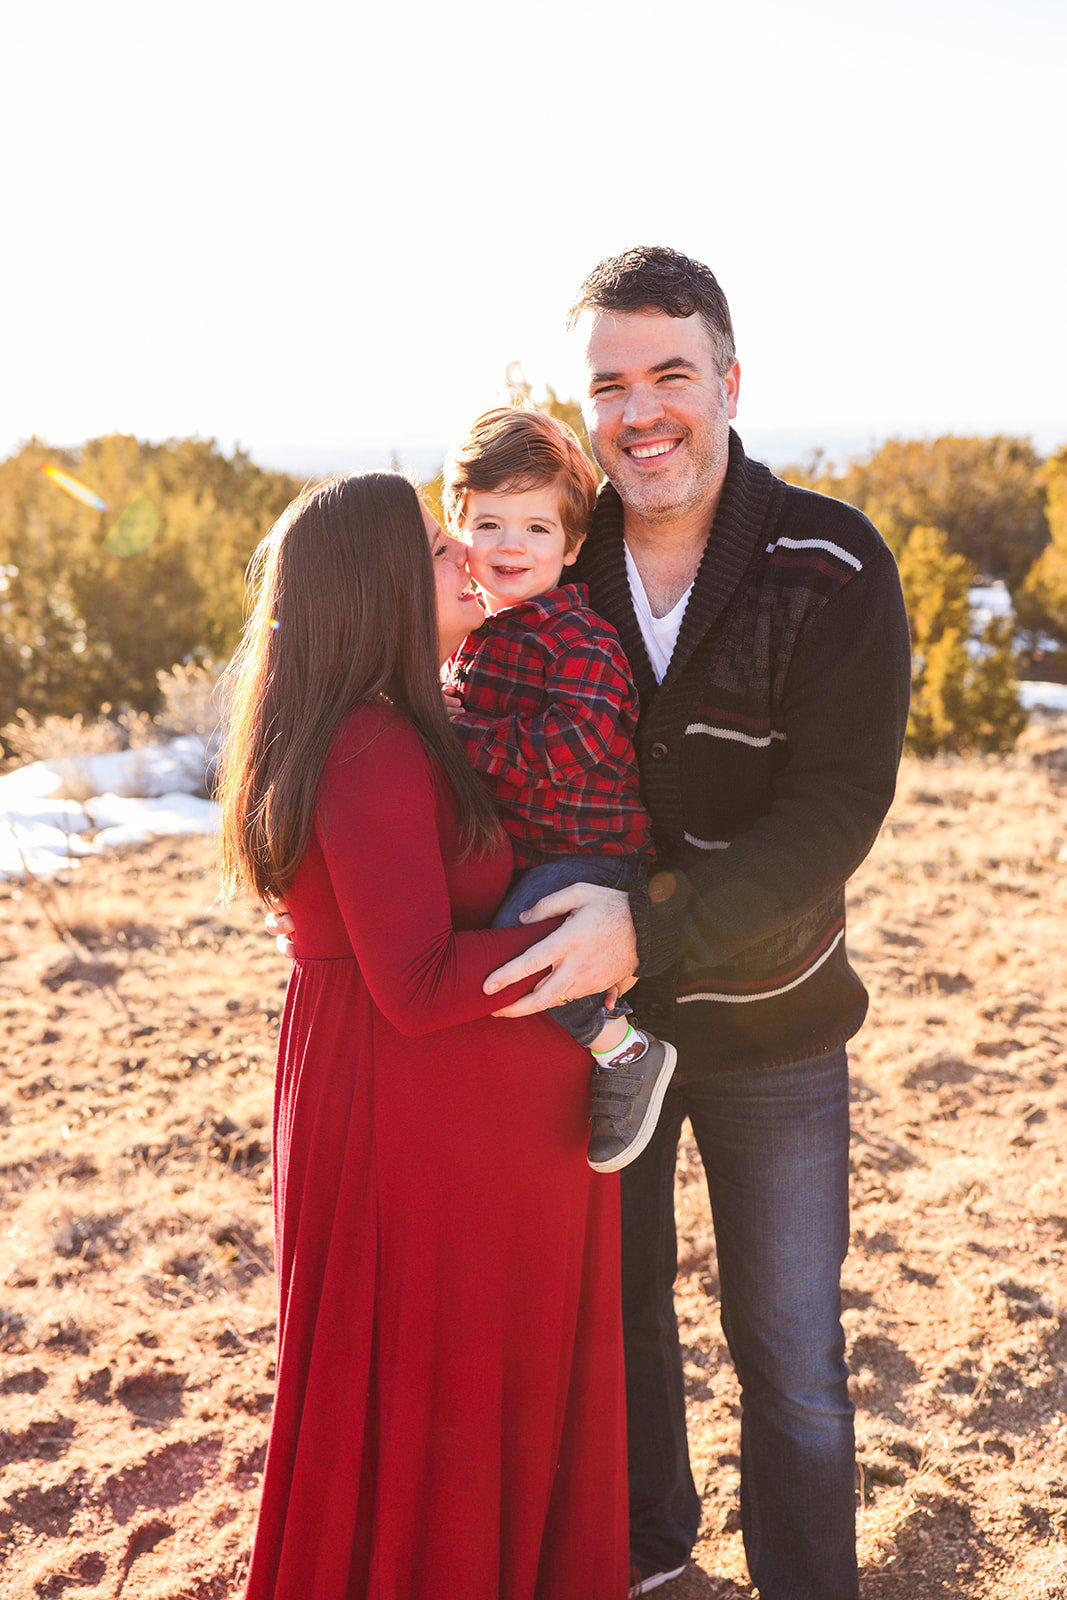 Albuquerque Maternity Photographers_www.tylerbrooke.com_Kate Kauffman_003